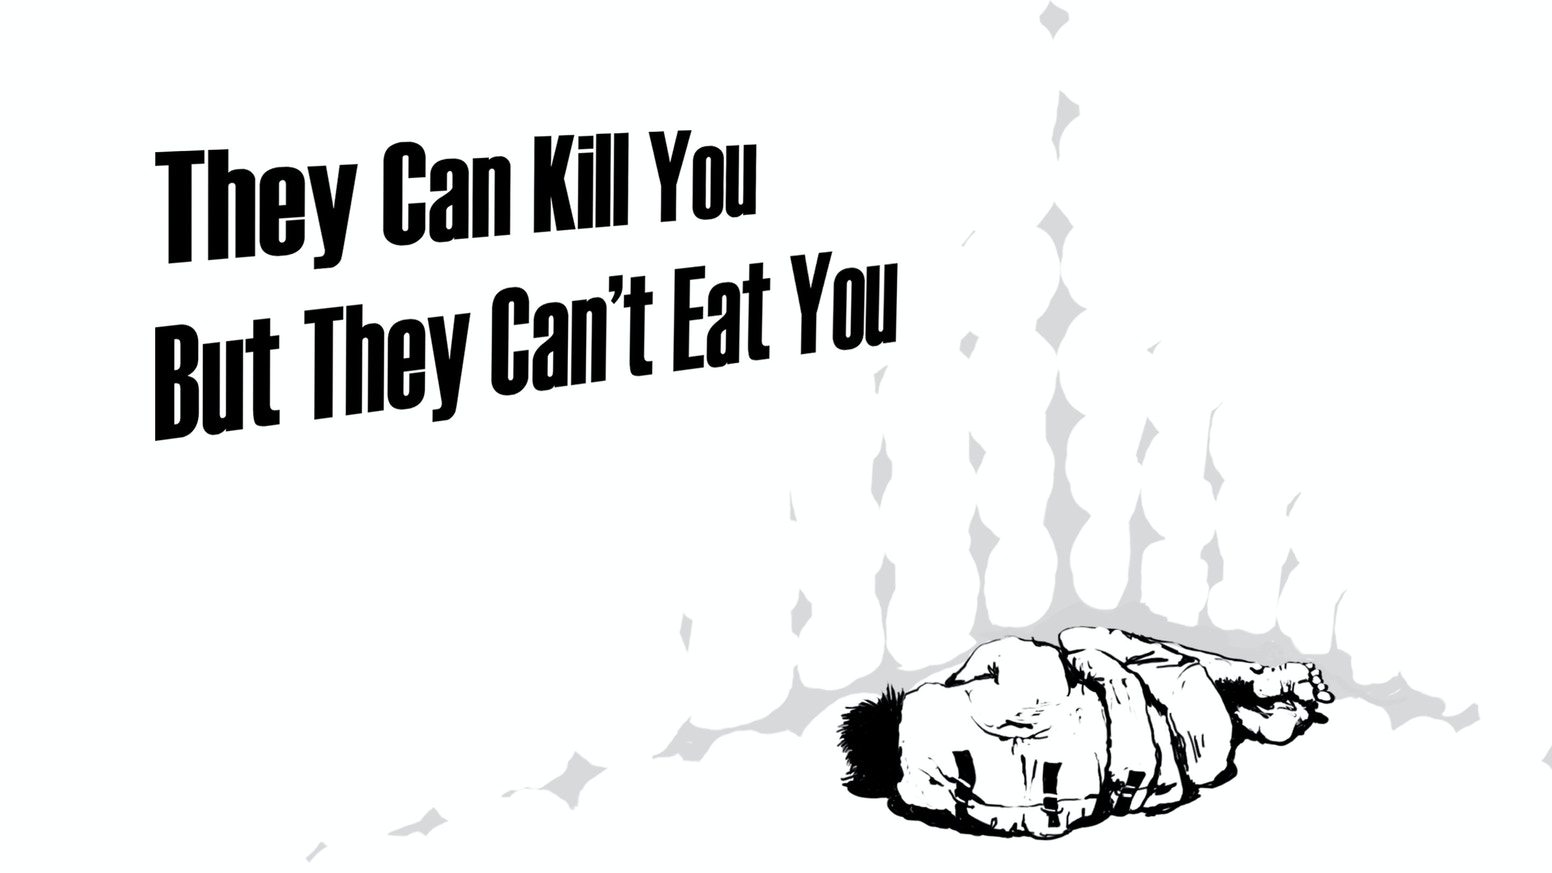 They Can Kill You, But They Can't Eat You by Susan Havens